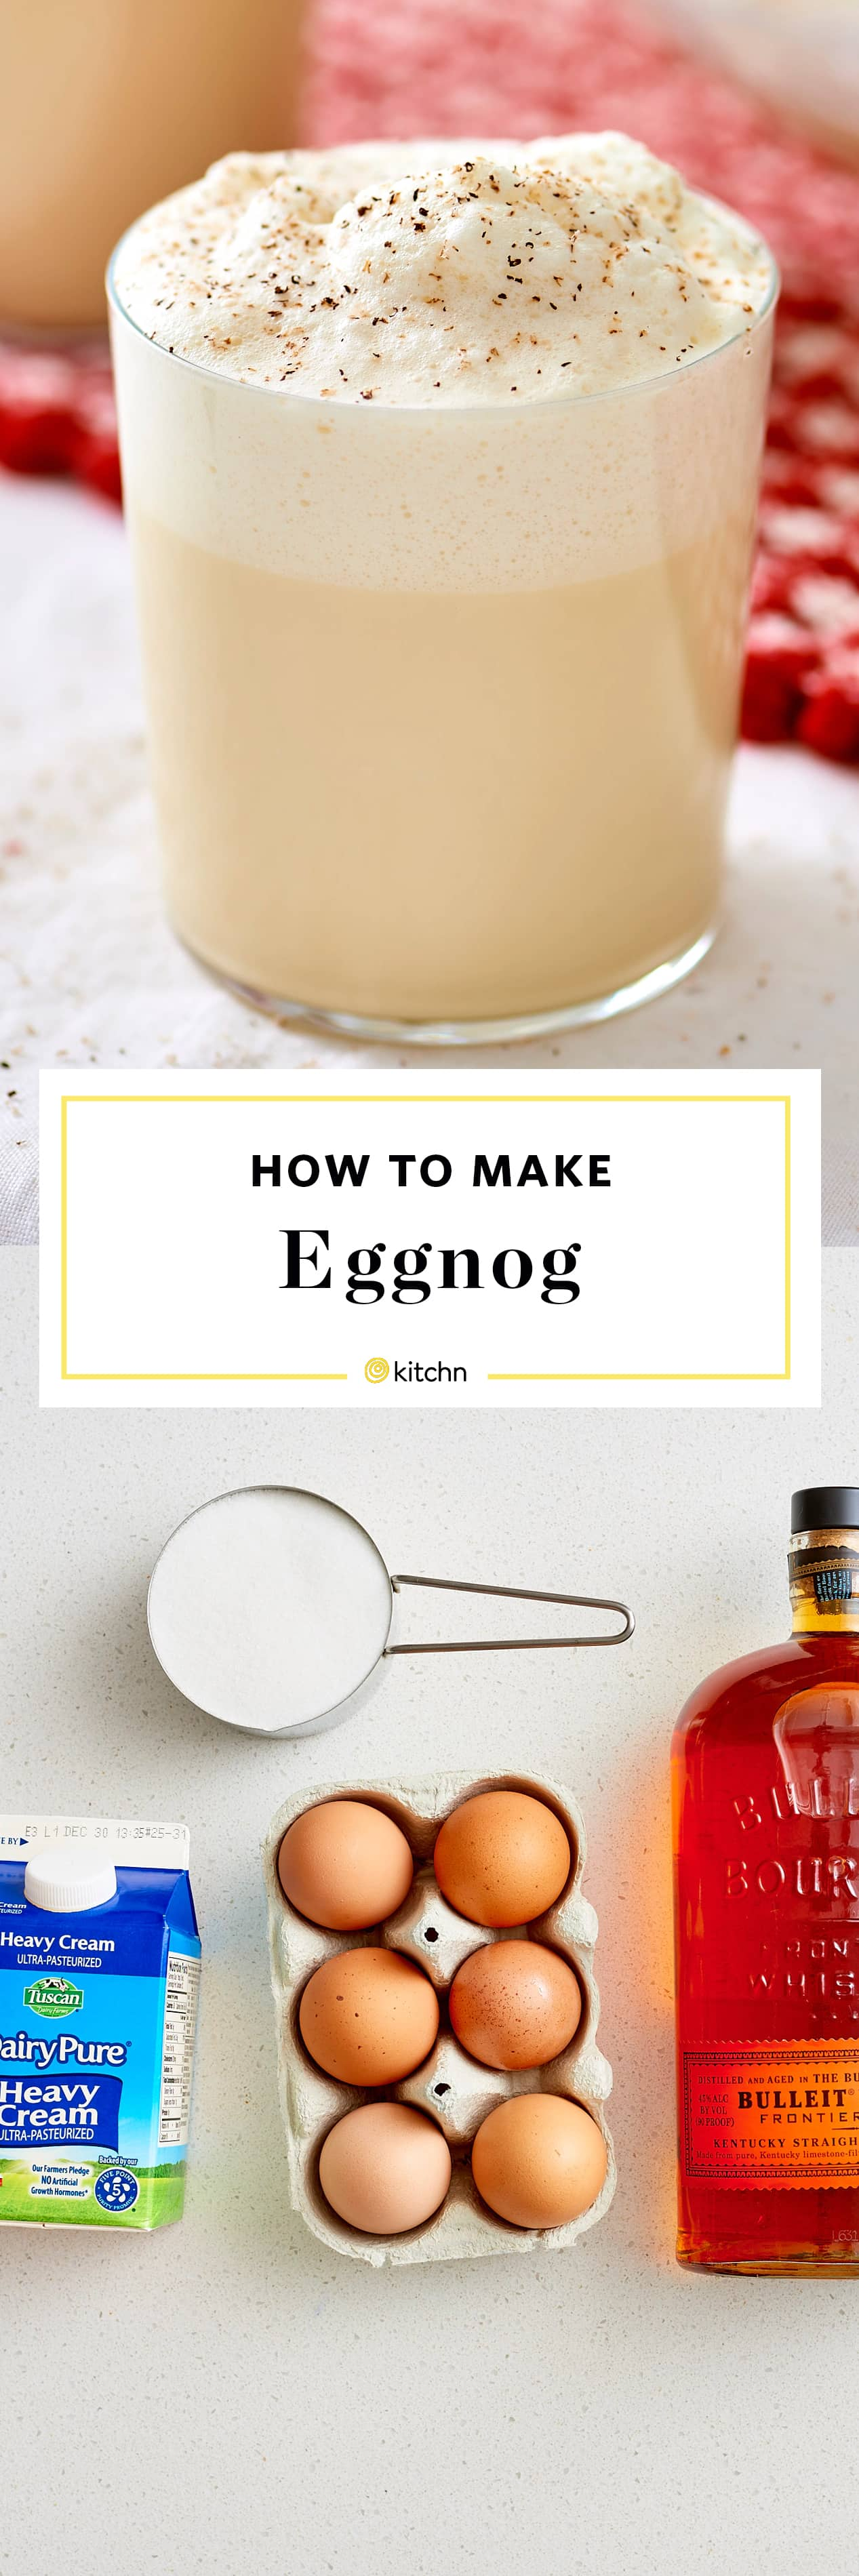 76ff28a04d7a How To Make Eggnog From Scratch